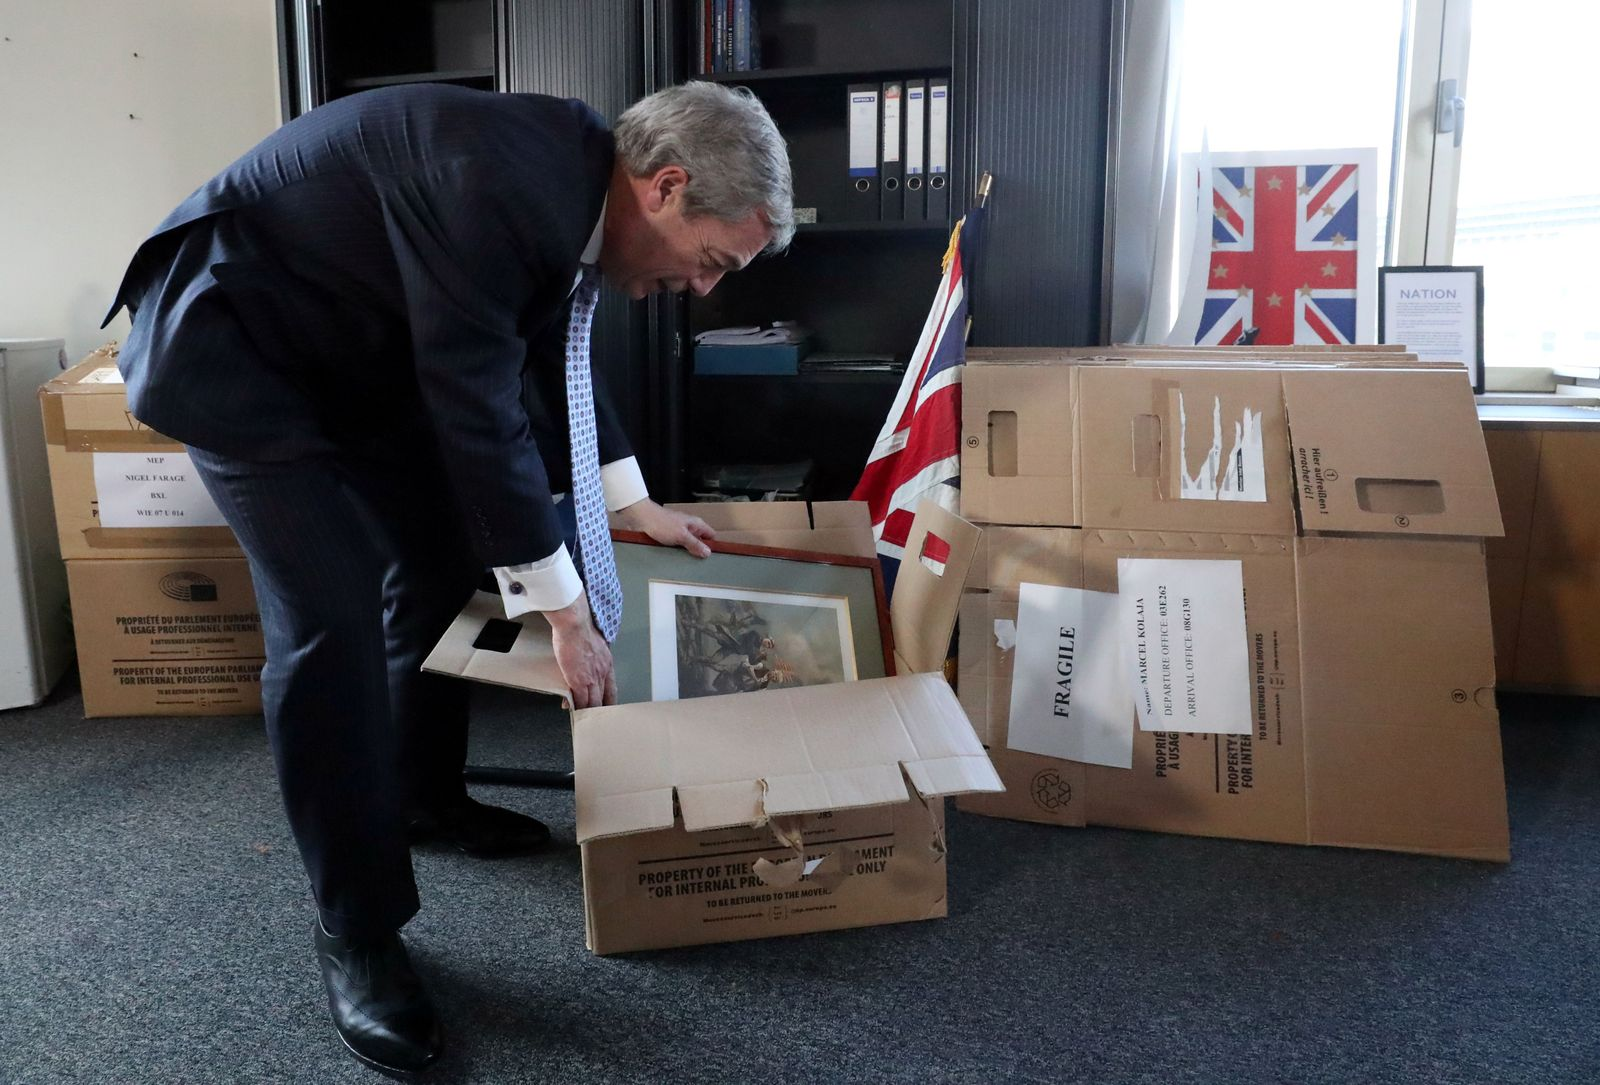 Brexit Party leader Farage packs his items in his office at EU Parliament in Brussels